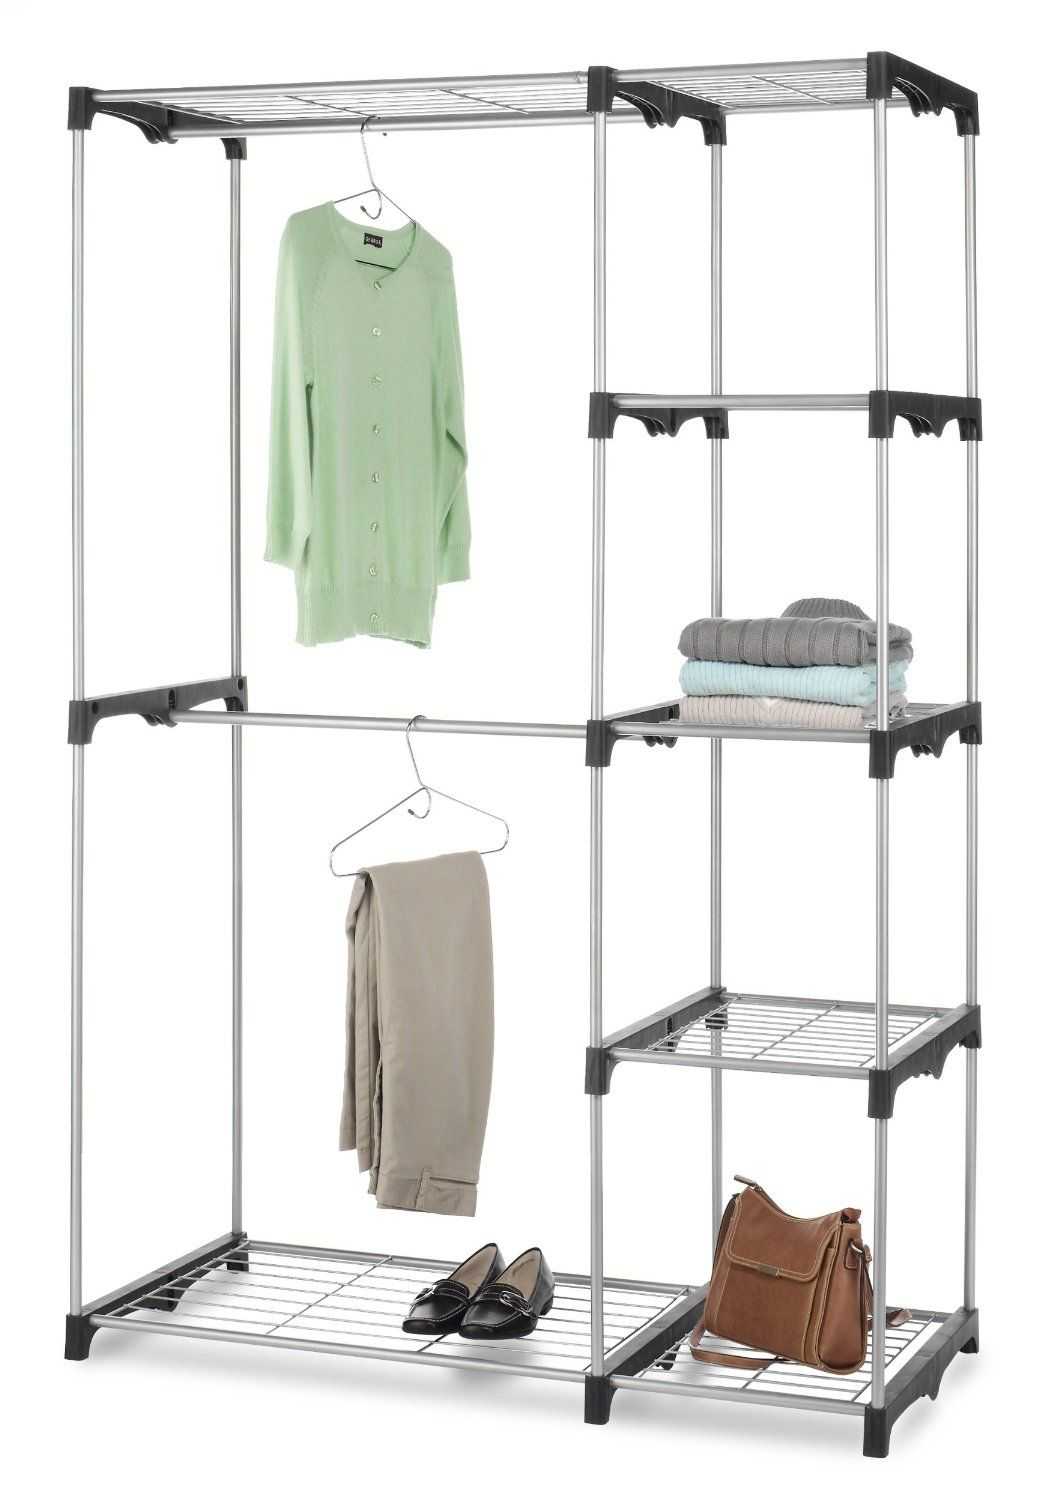 Whitmor Double Rod Freestanding Closet, Silver/Black For The Tent Sale.  Then Use For Storage In The Back Room!